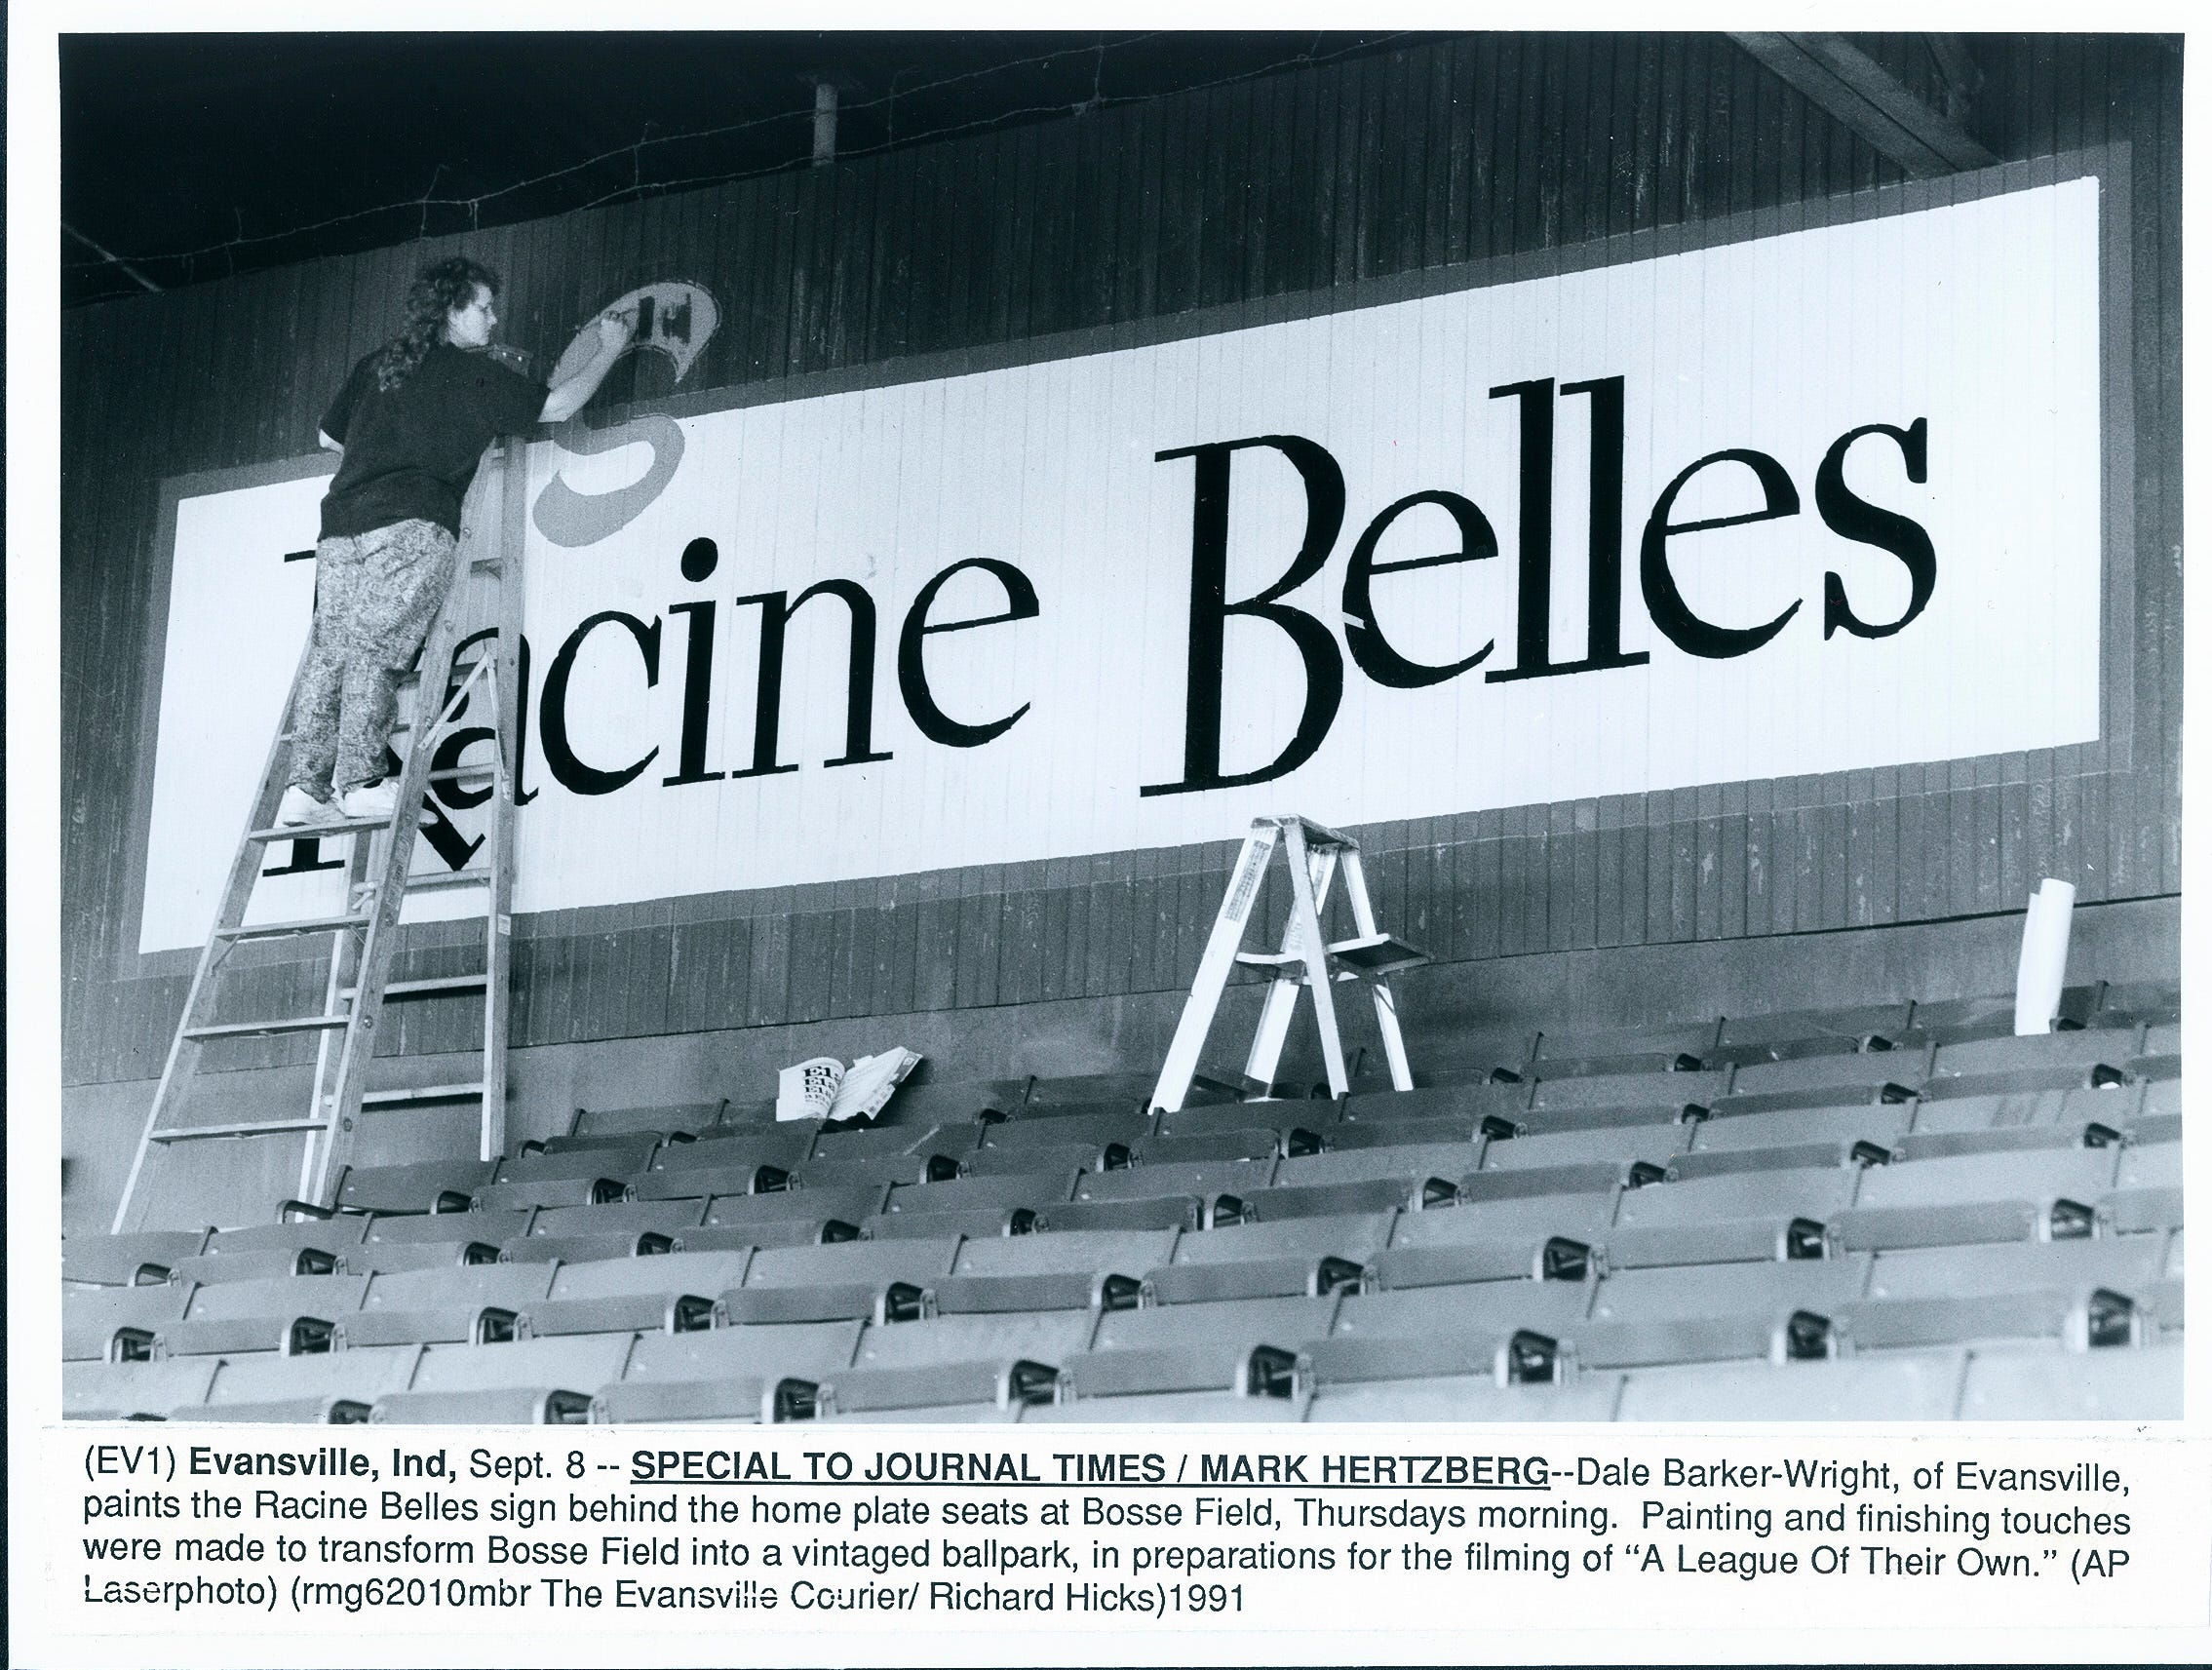 Dale Barker-Wright of Evansville paints the Racine Belles sign behind home plate at Bosse Field in Evansville, Indiana.